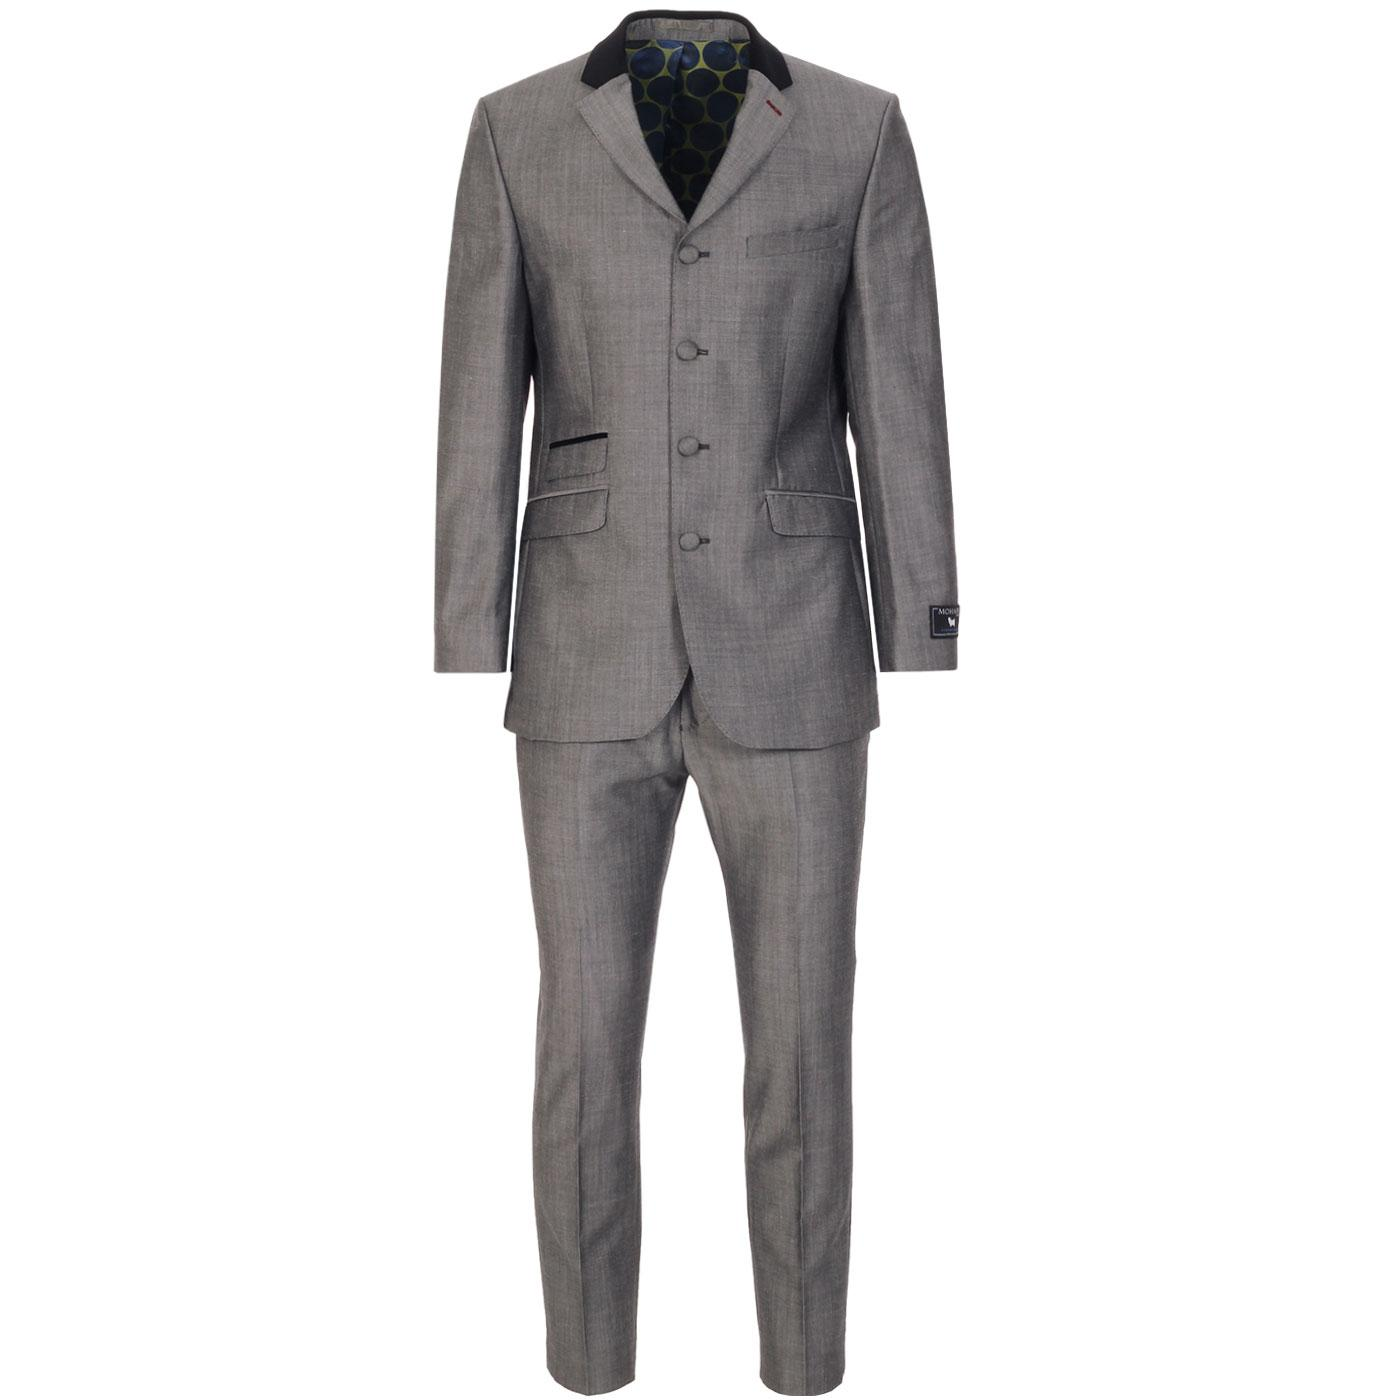 MADCAP ENGLAND 1960s Fab 4 Button Suit in Silver